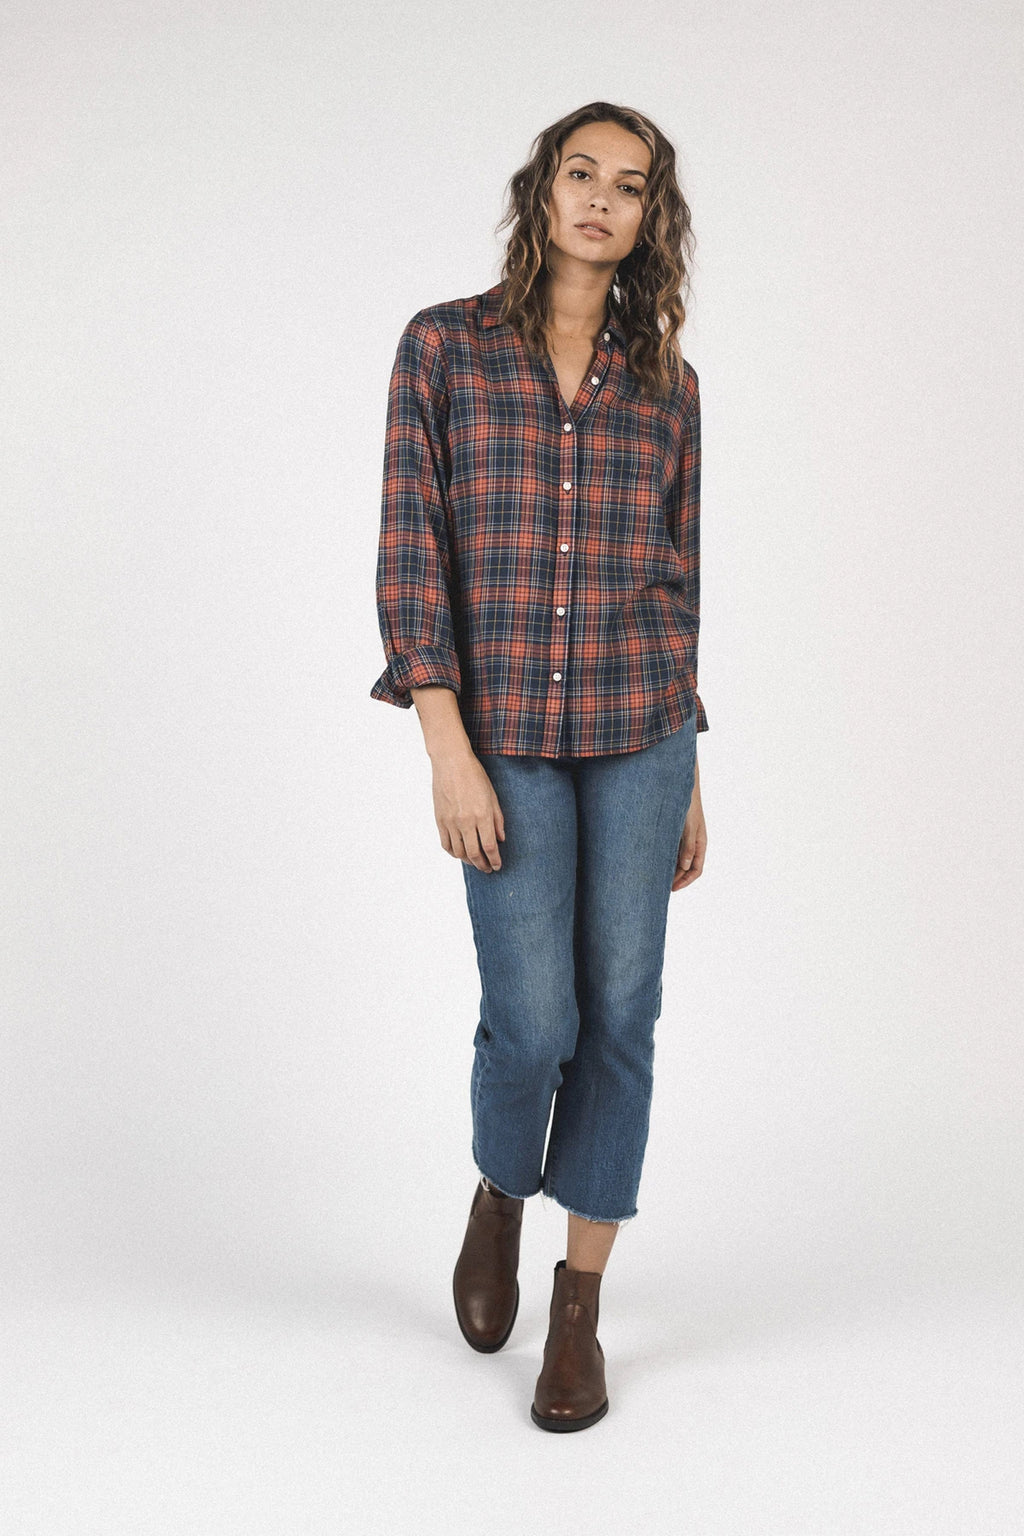 Trovata Grace Classic Shirt in Highland Plaid